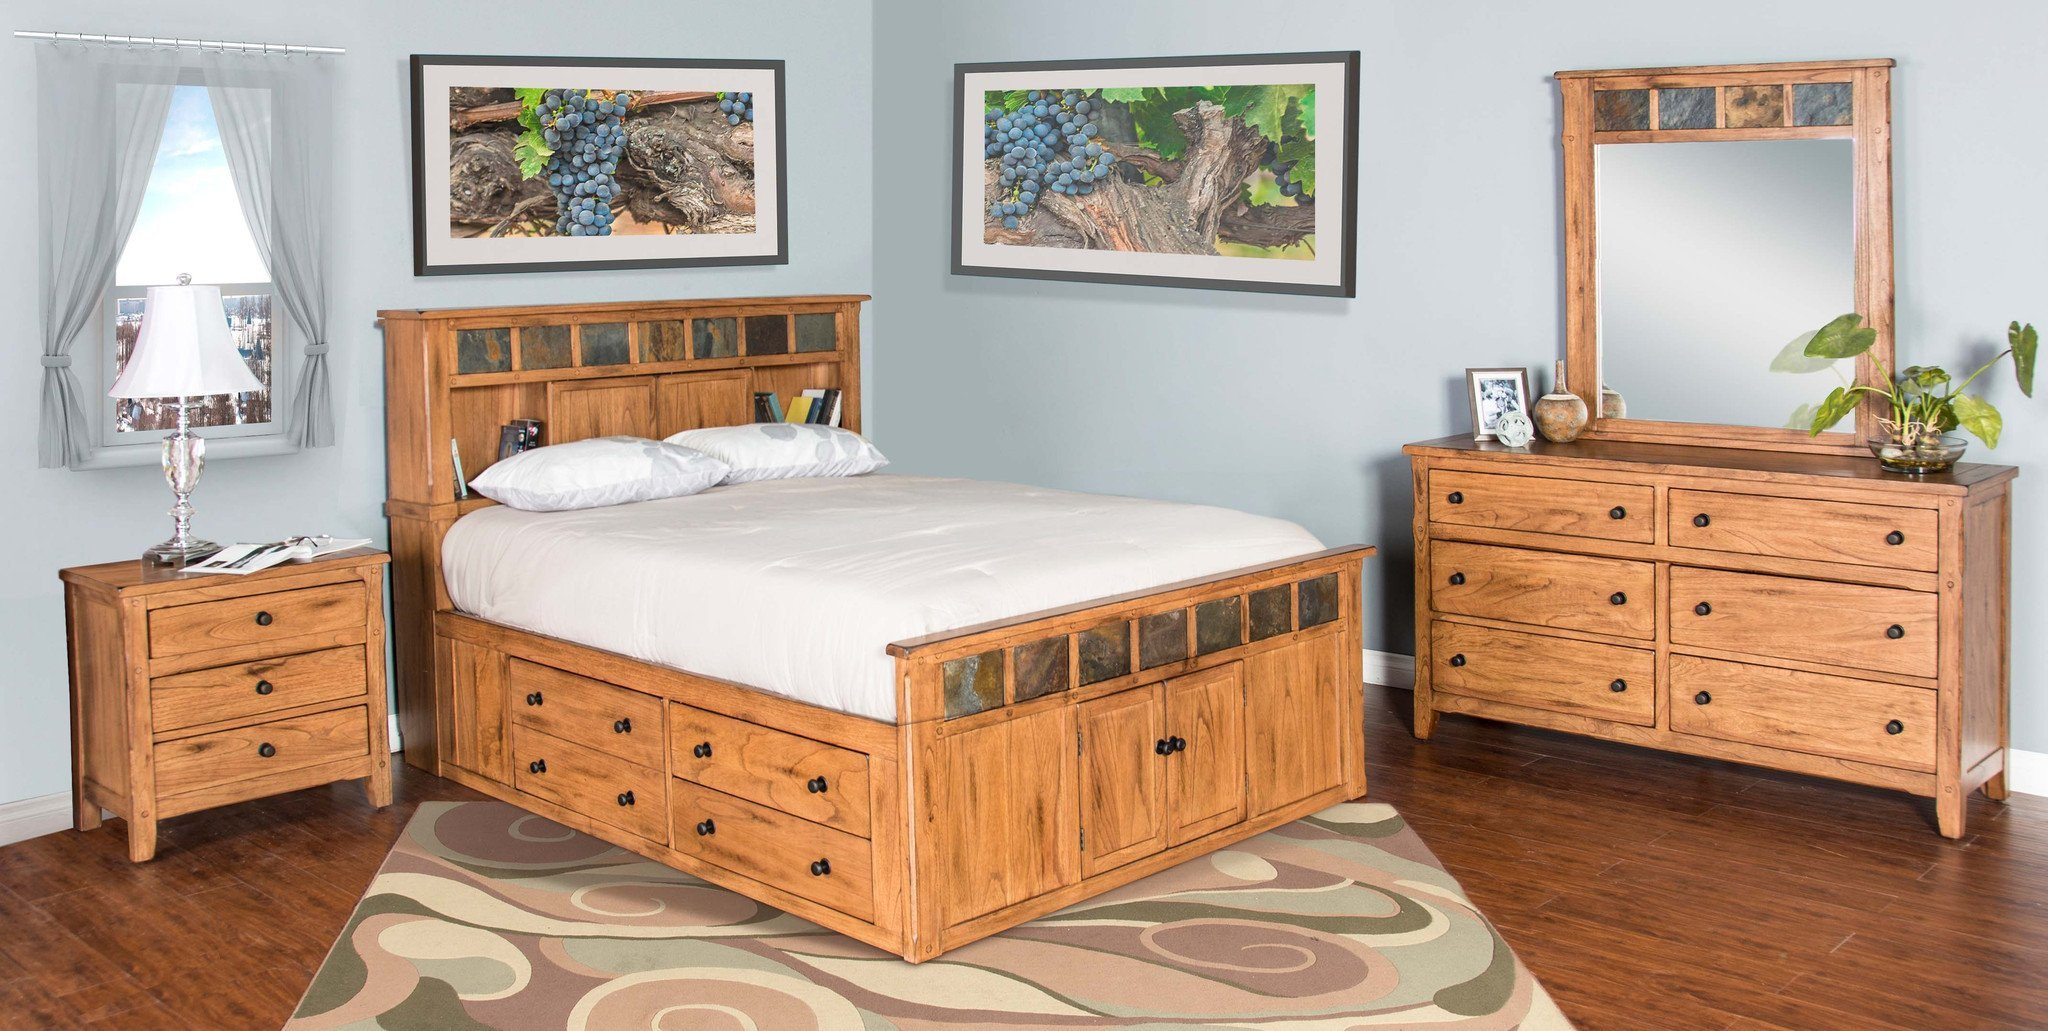 King Size Oak Bedroom Set Fresh Sedona Rustic Petite Storage Bedroom Suite E King Size